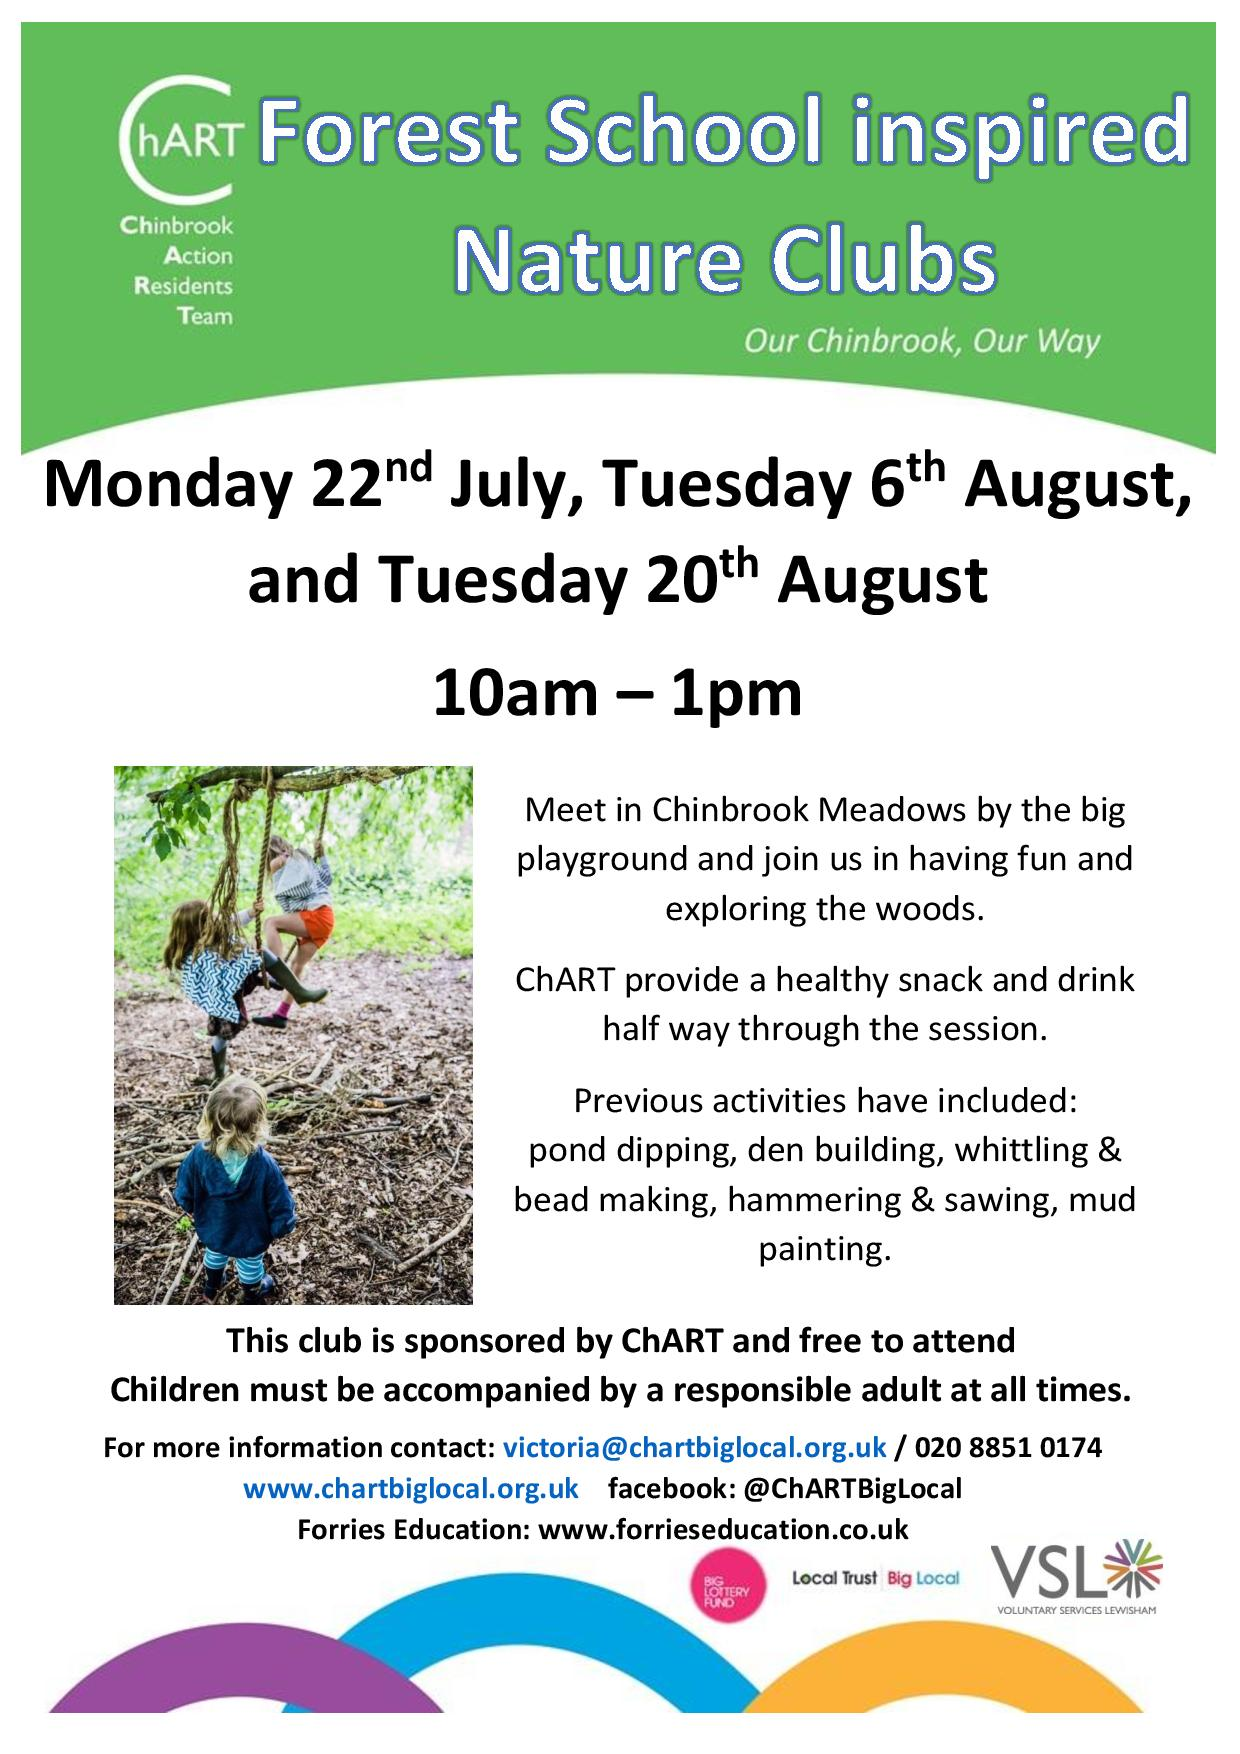 Flyer advertising Nature Club Summer 2019, picture shows children playing on rope swings in forested area. Sessions run Monday 22nd July, Tuesday 6th August and Tuesday 20th August 10am - 1pm in Chinbrook Meadows